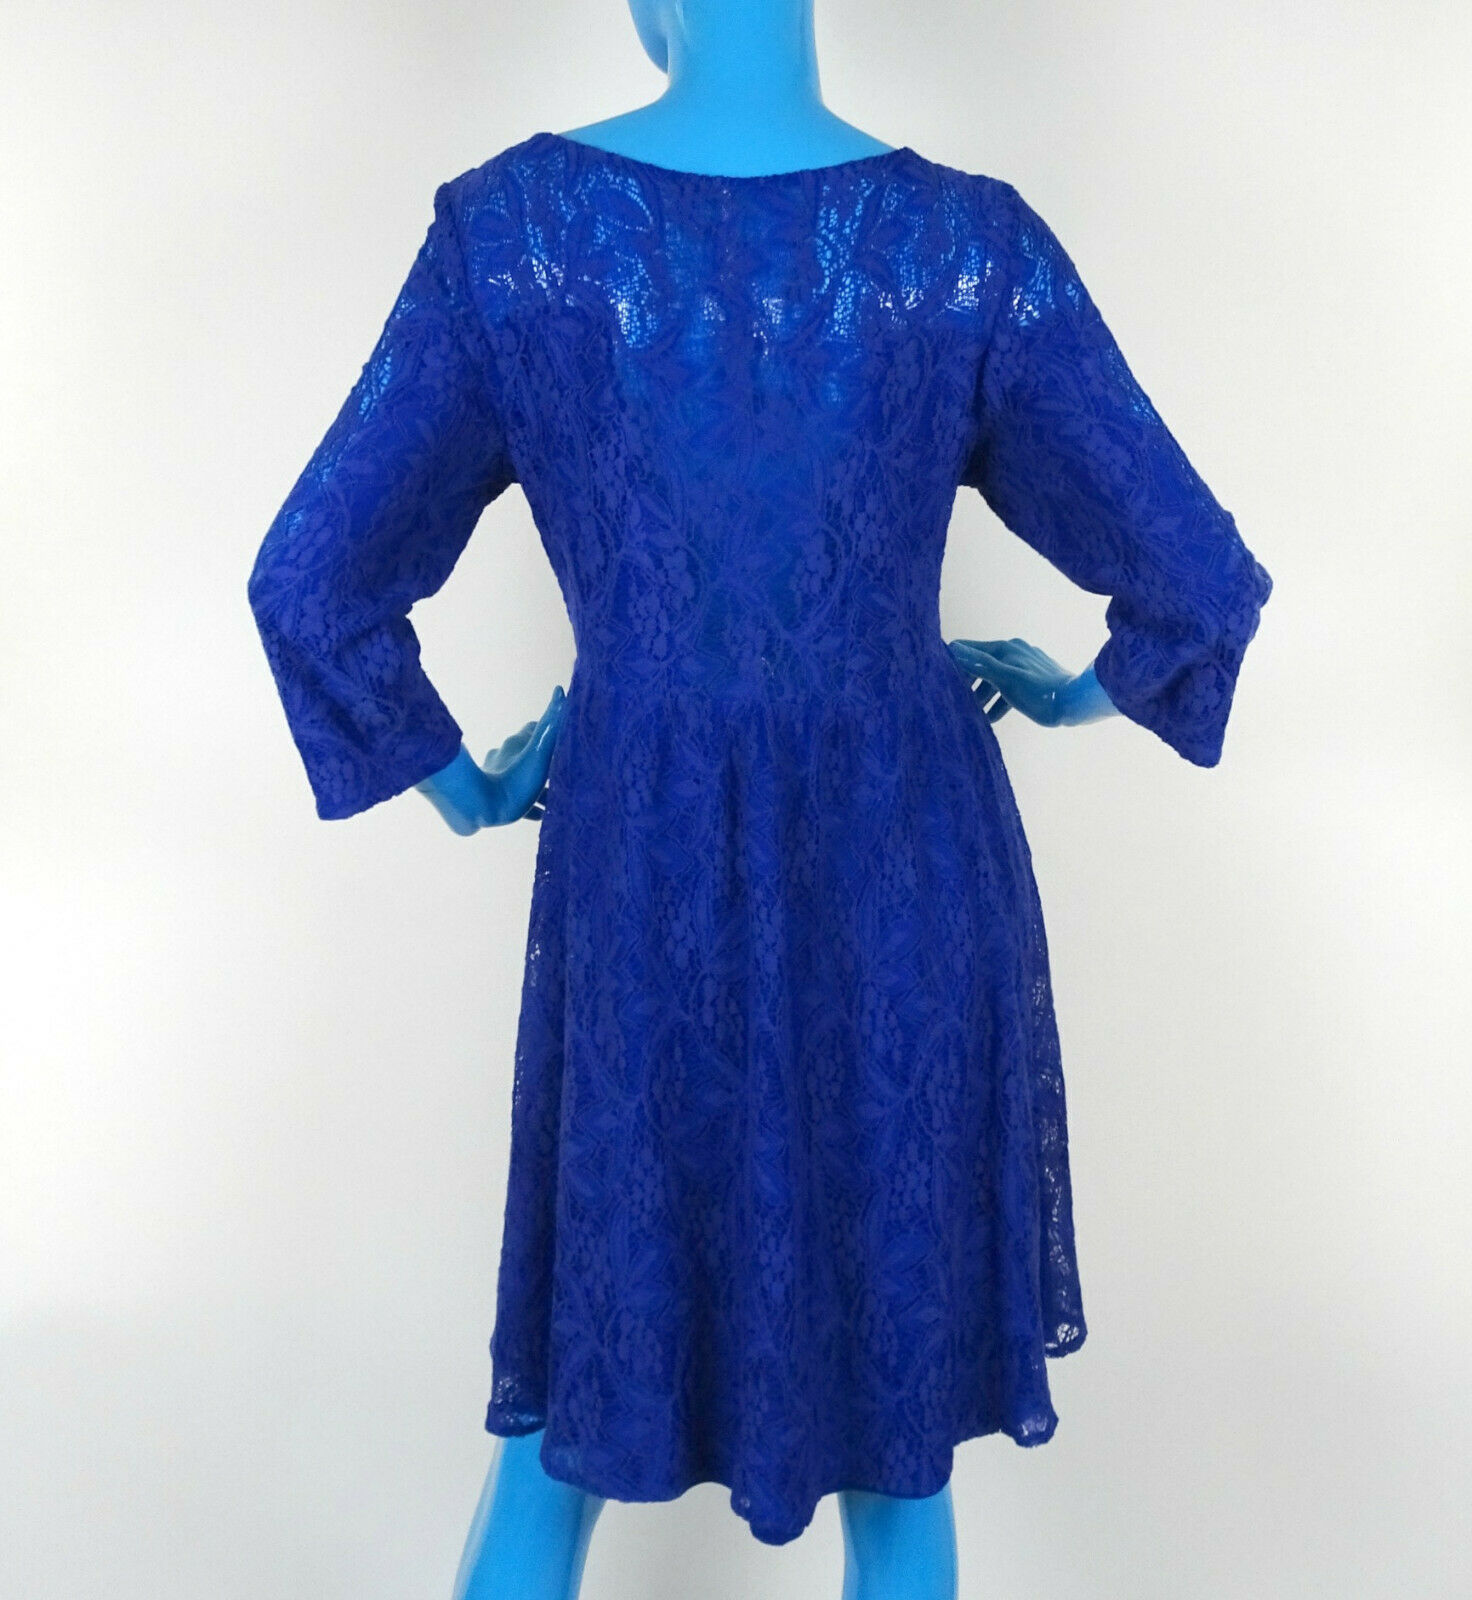 Free People Blue Lace Victorian Boho Dress L 12 14 Stretch 3/4 Sleeves Career